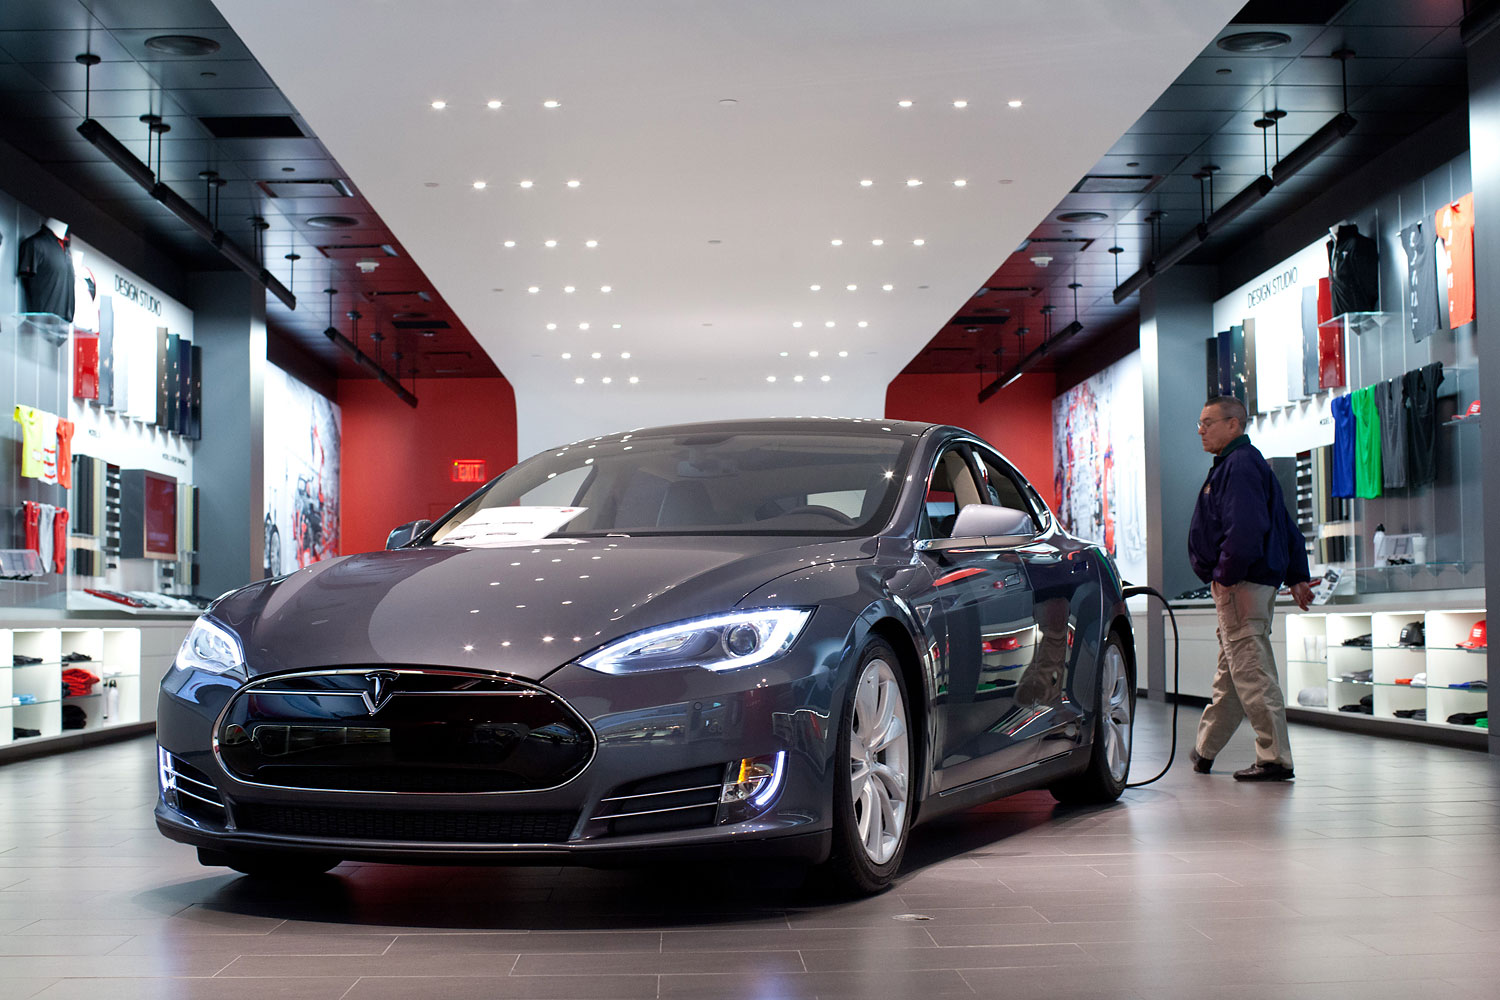 A Model S with sits on display at the Tesla store in the Short Hills Mall in Short Hills, NJ, March 12, 2014.